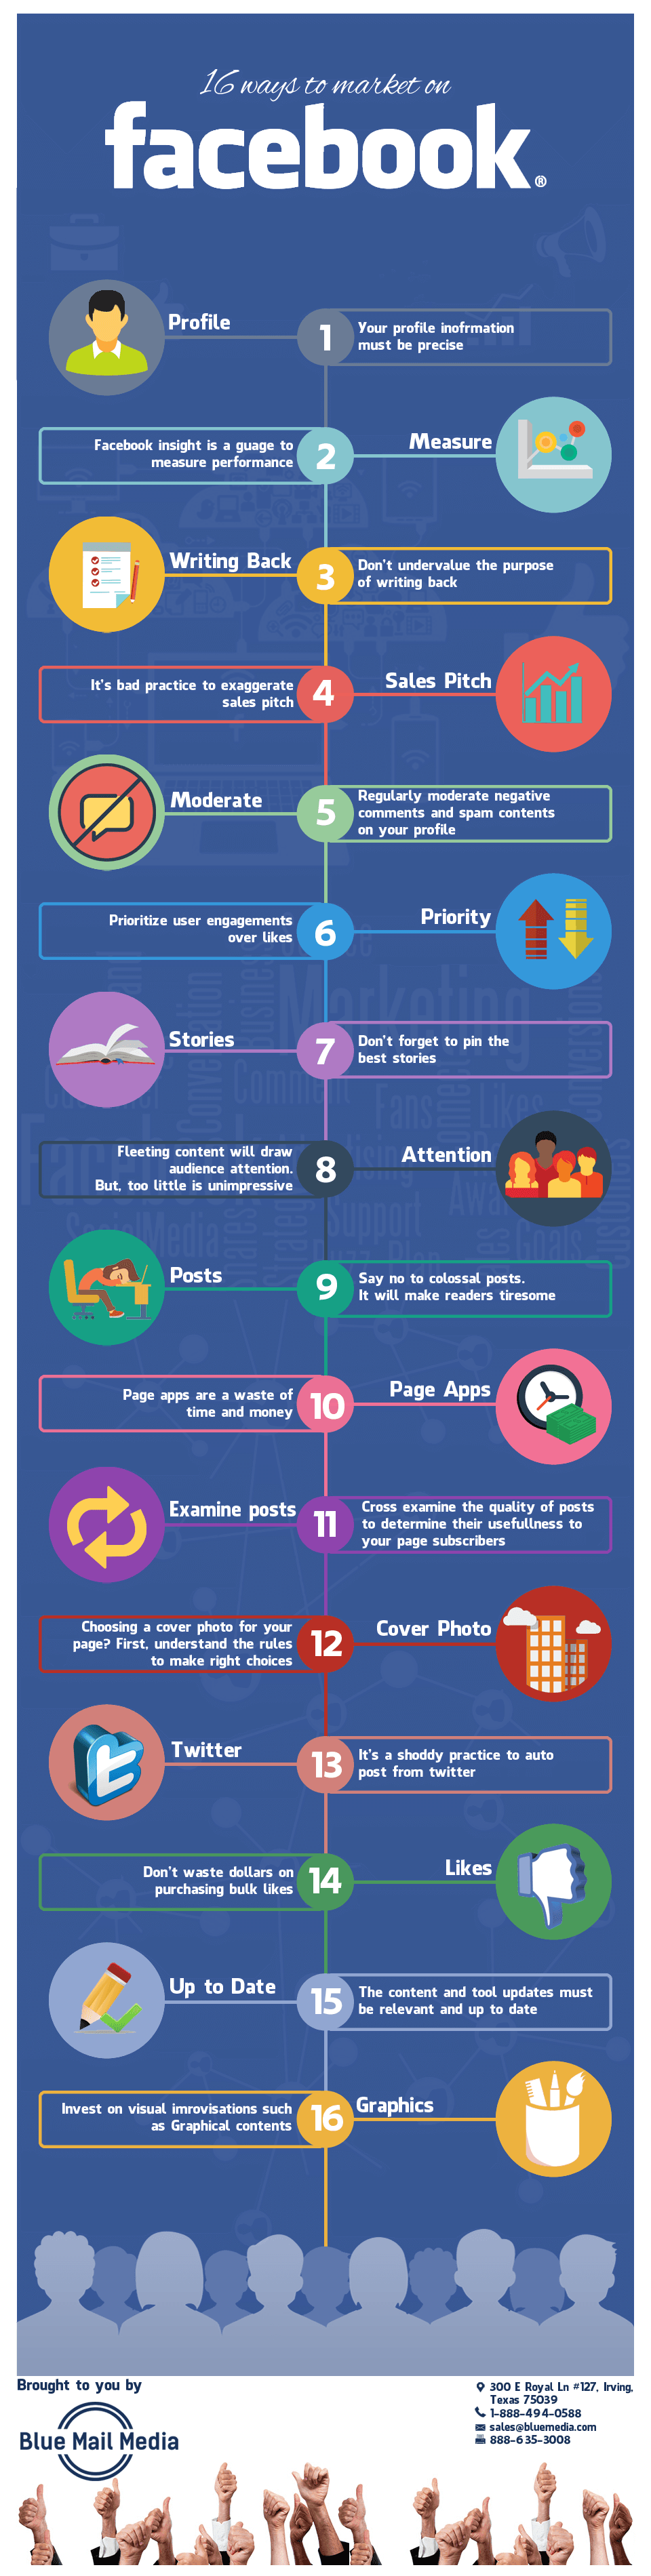 facebook-marketing-infographic-plaza